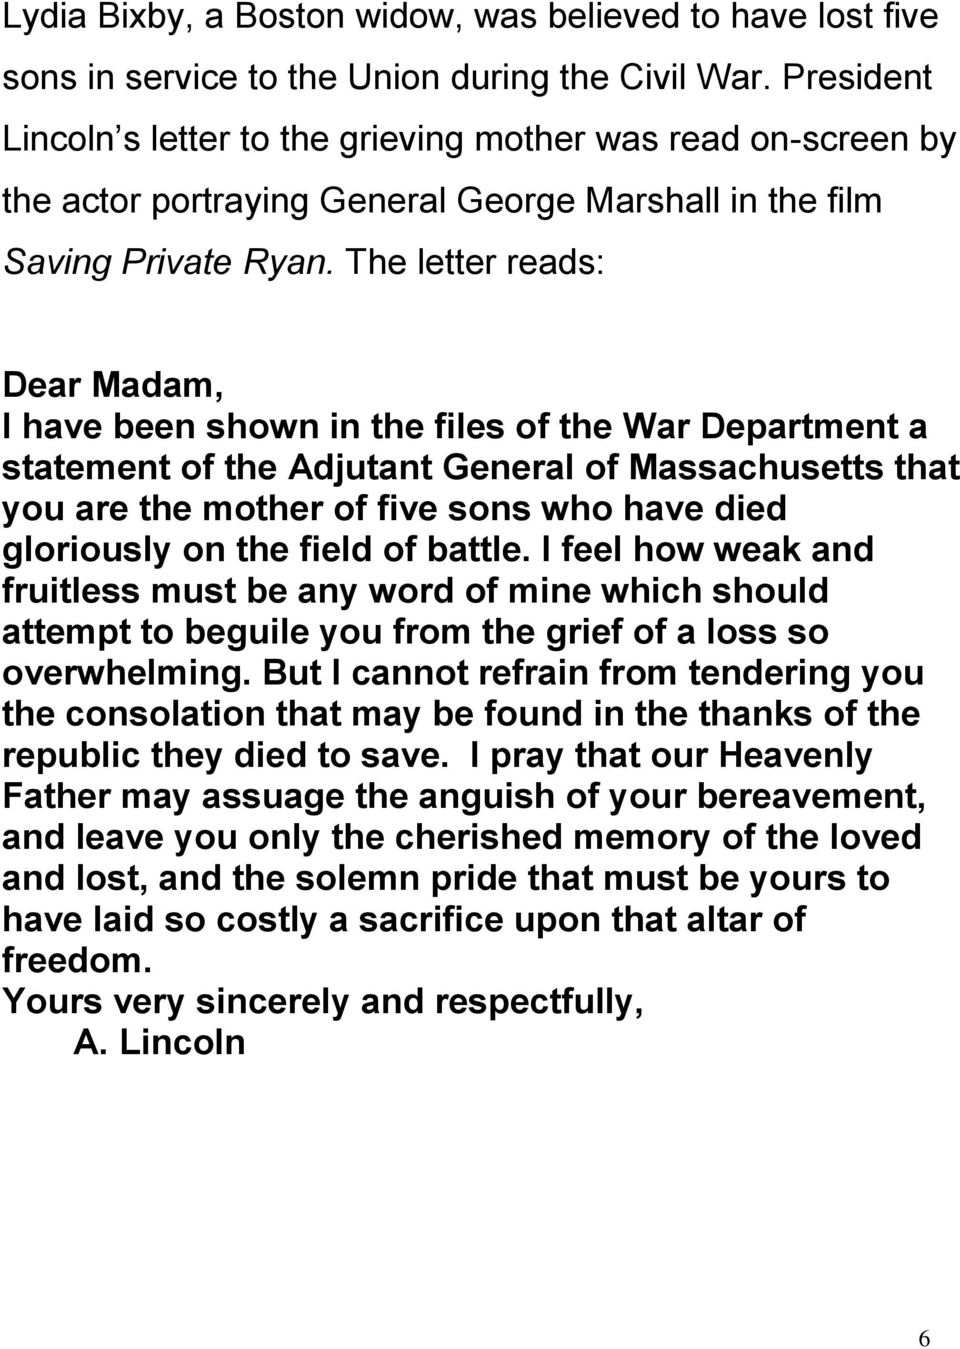 The letter reads: Dear Madam, I have been shown in the files of the War Department a statement of the Adjutant General of Massachusetts that you are the mother of five sons who have died gloriously